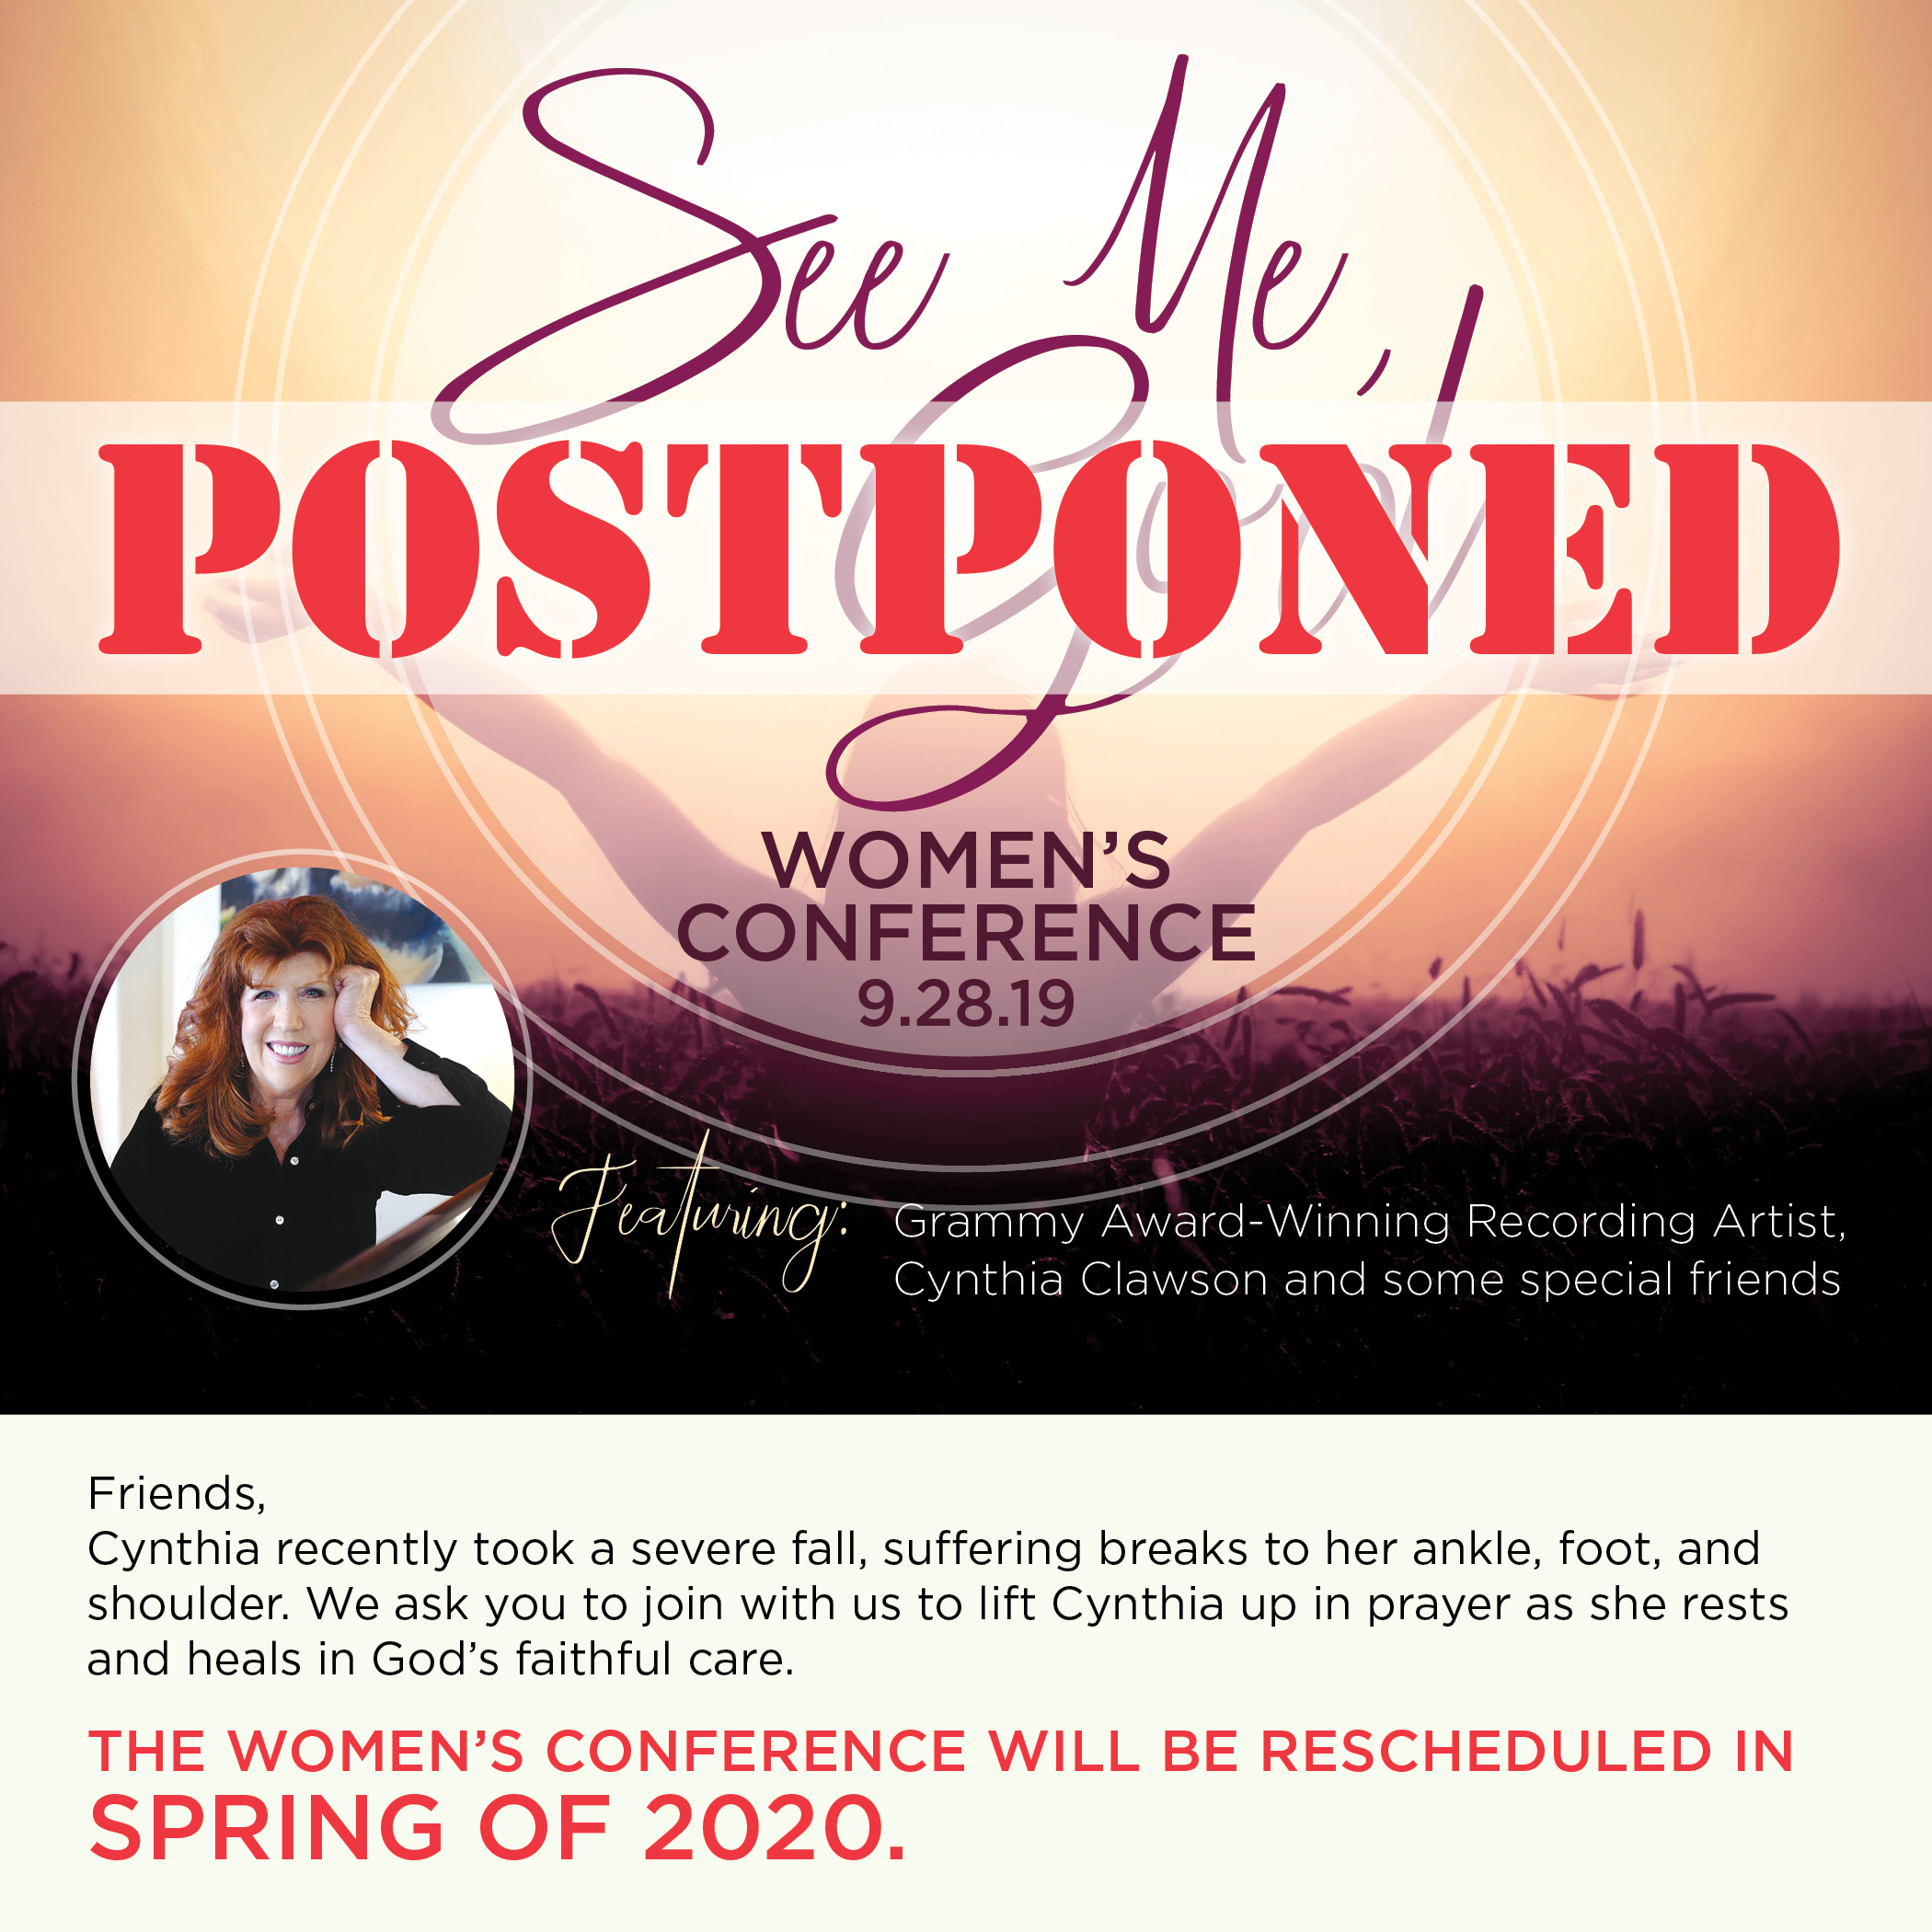 CAHM_TBCH Women's Conference Postponed Email